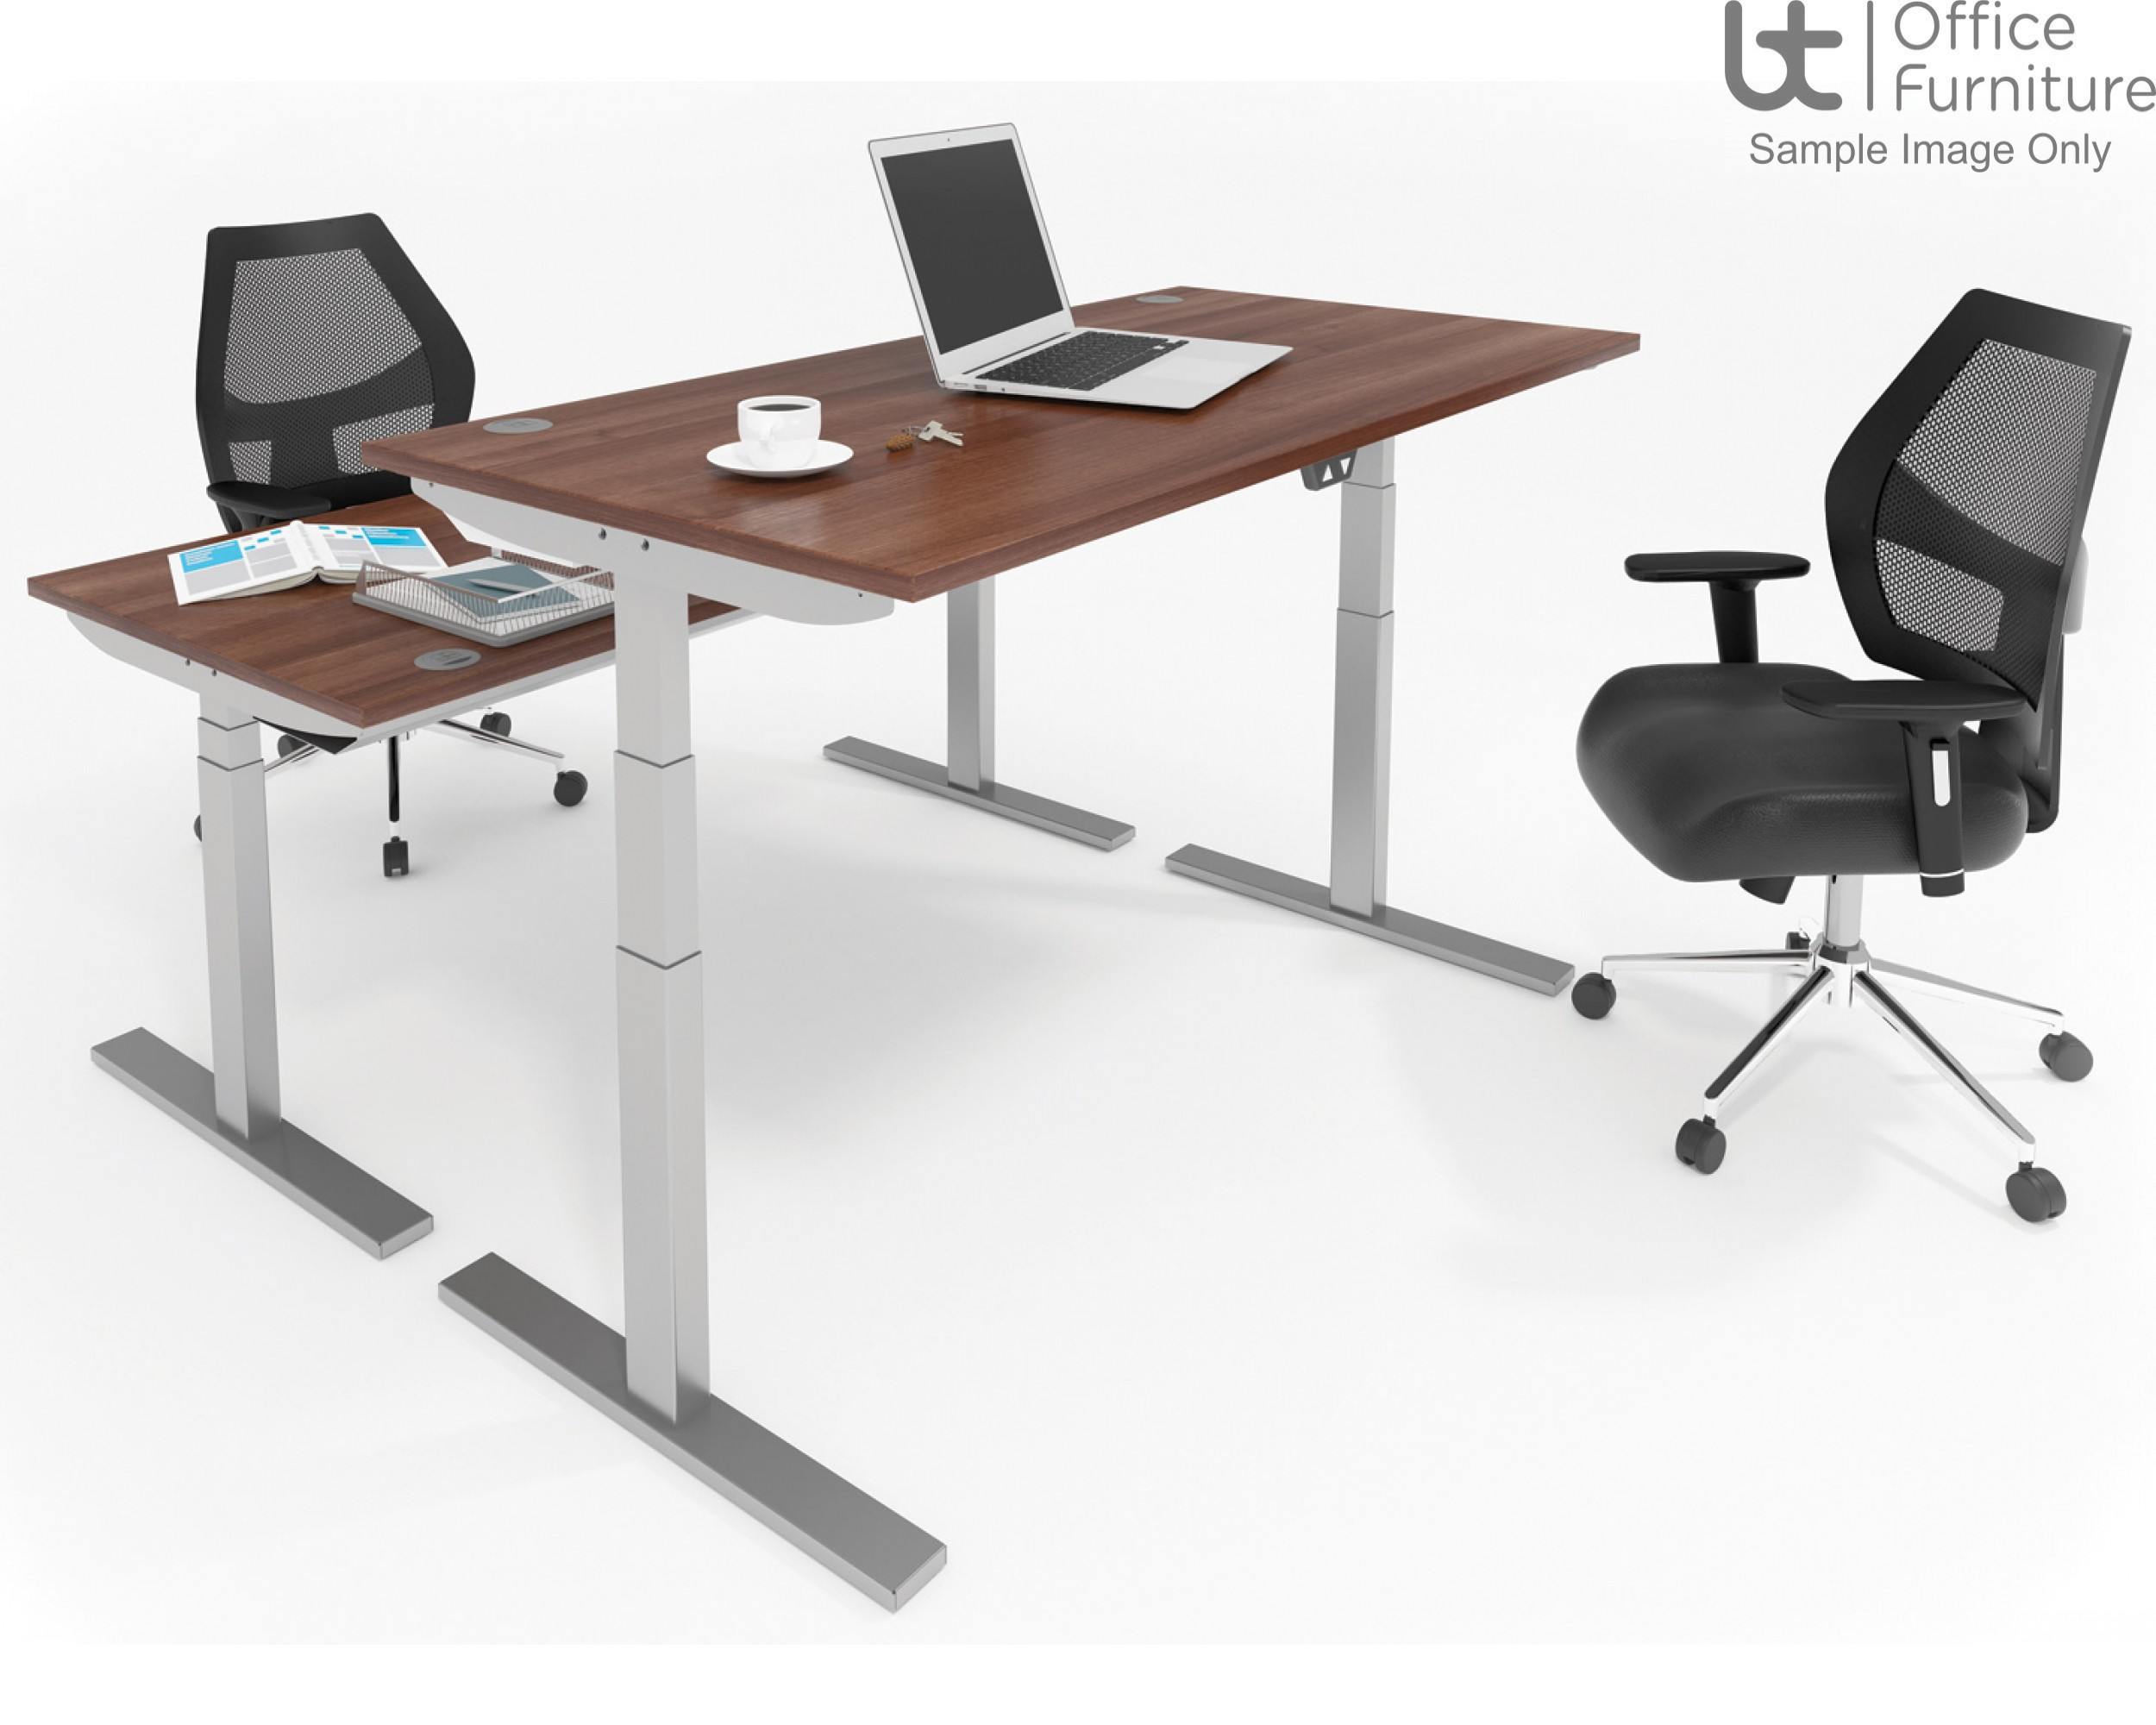 Elevated Electrical Height Adjustable Sit Stand Office Desk